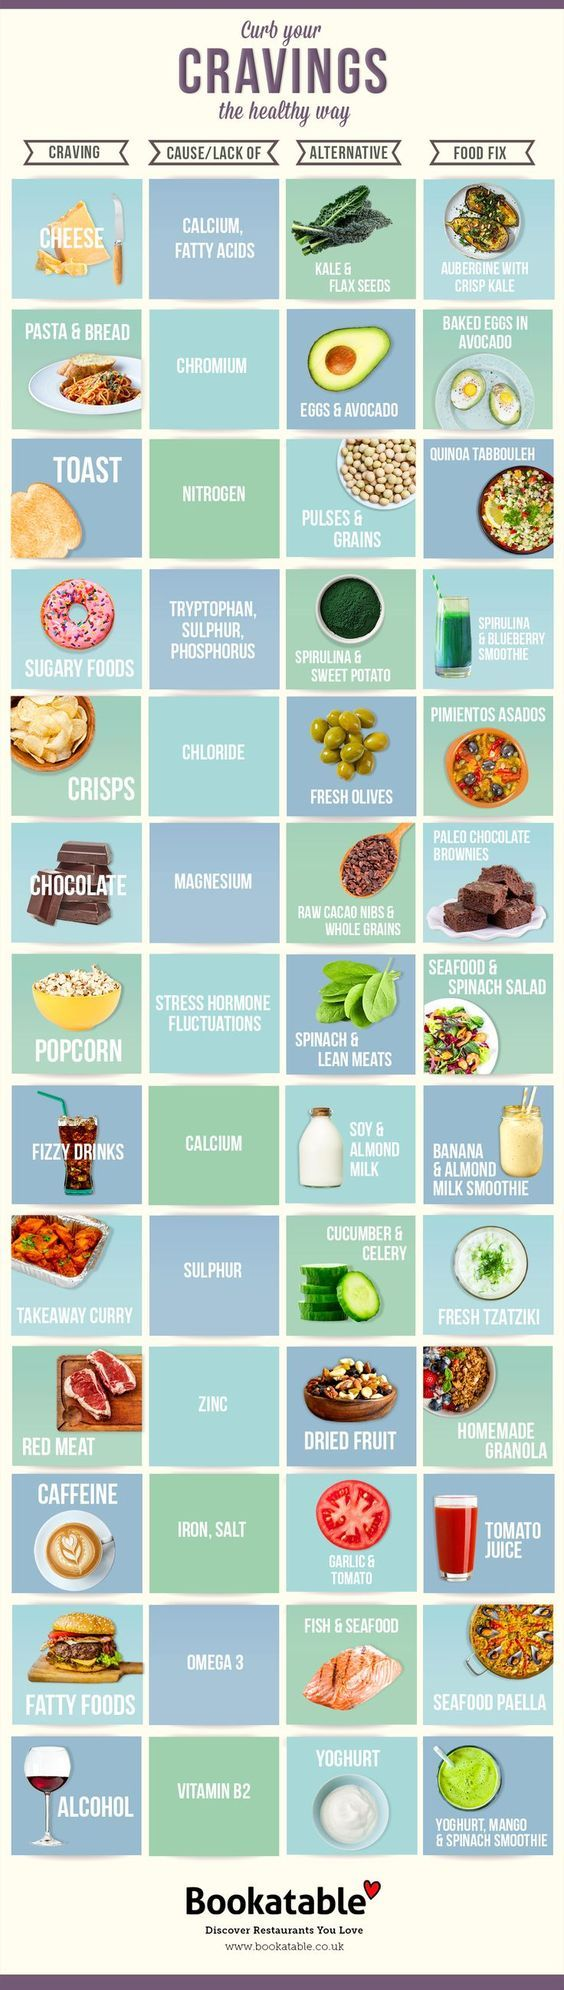 Weight loss plan for dogs picture 8